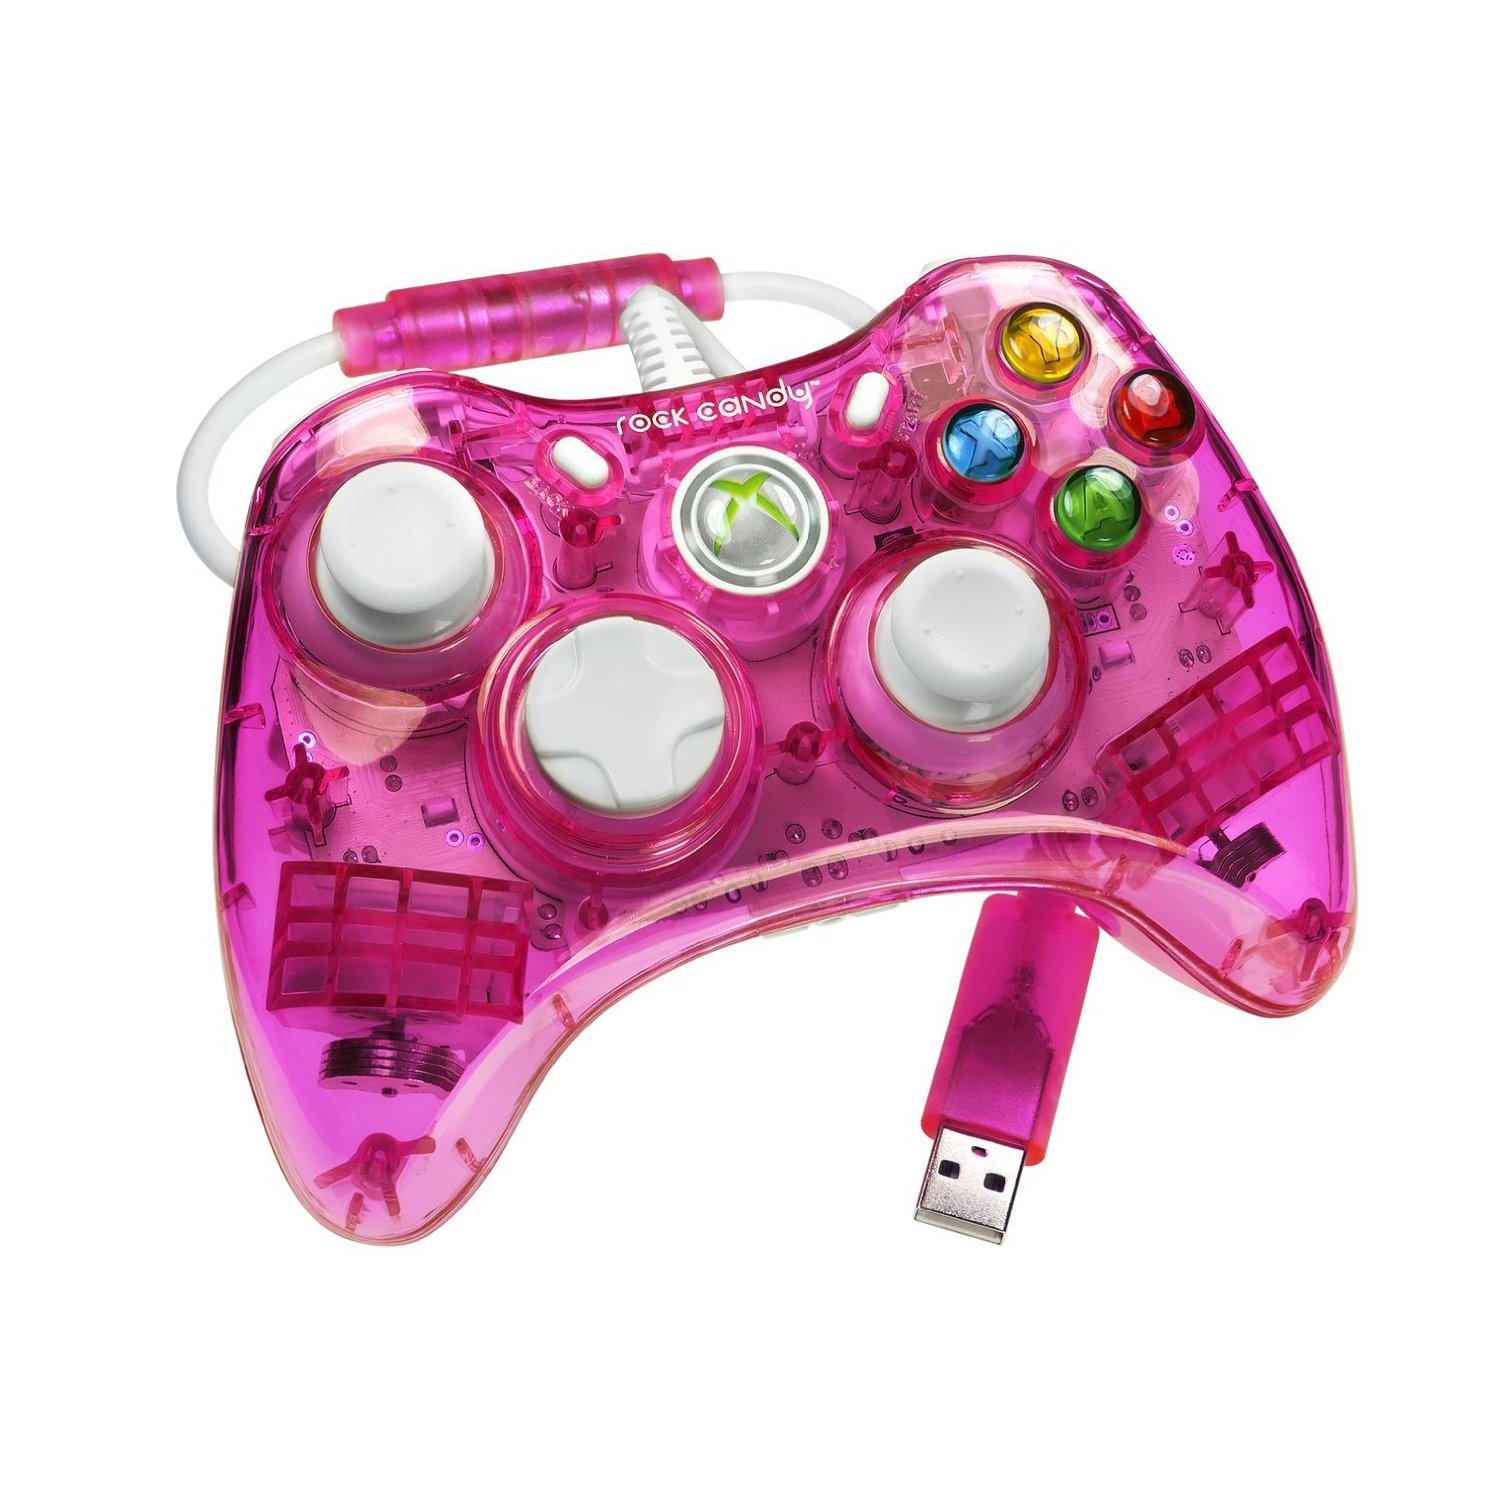 rock-candy-pink-xbox-360-wired-controller-neon-pink-1788-p.jpg